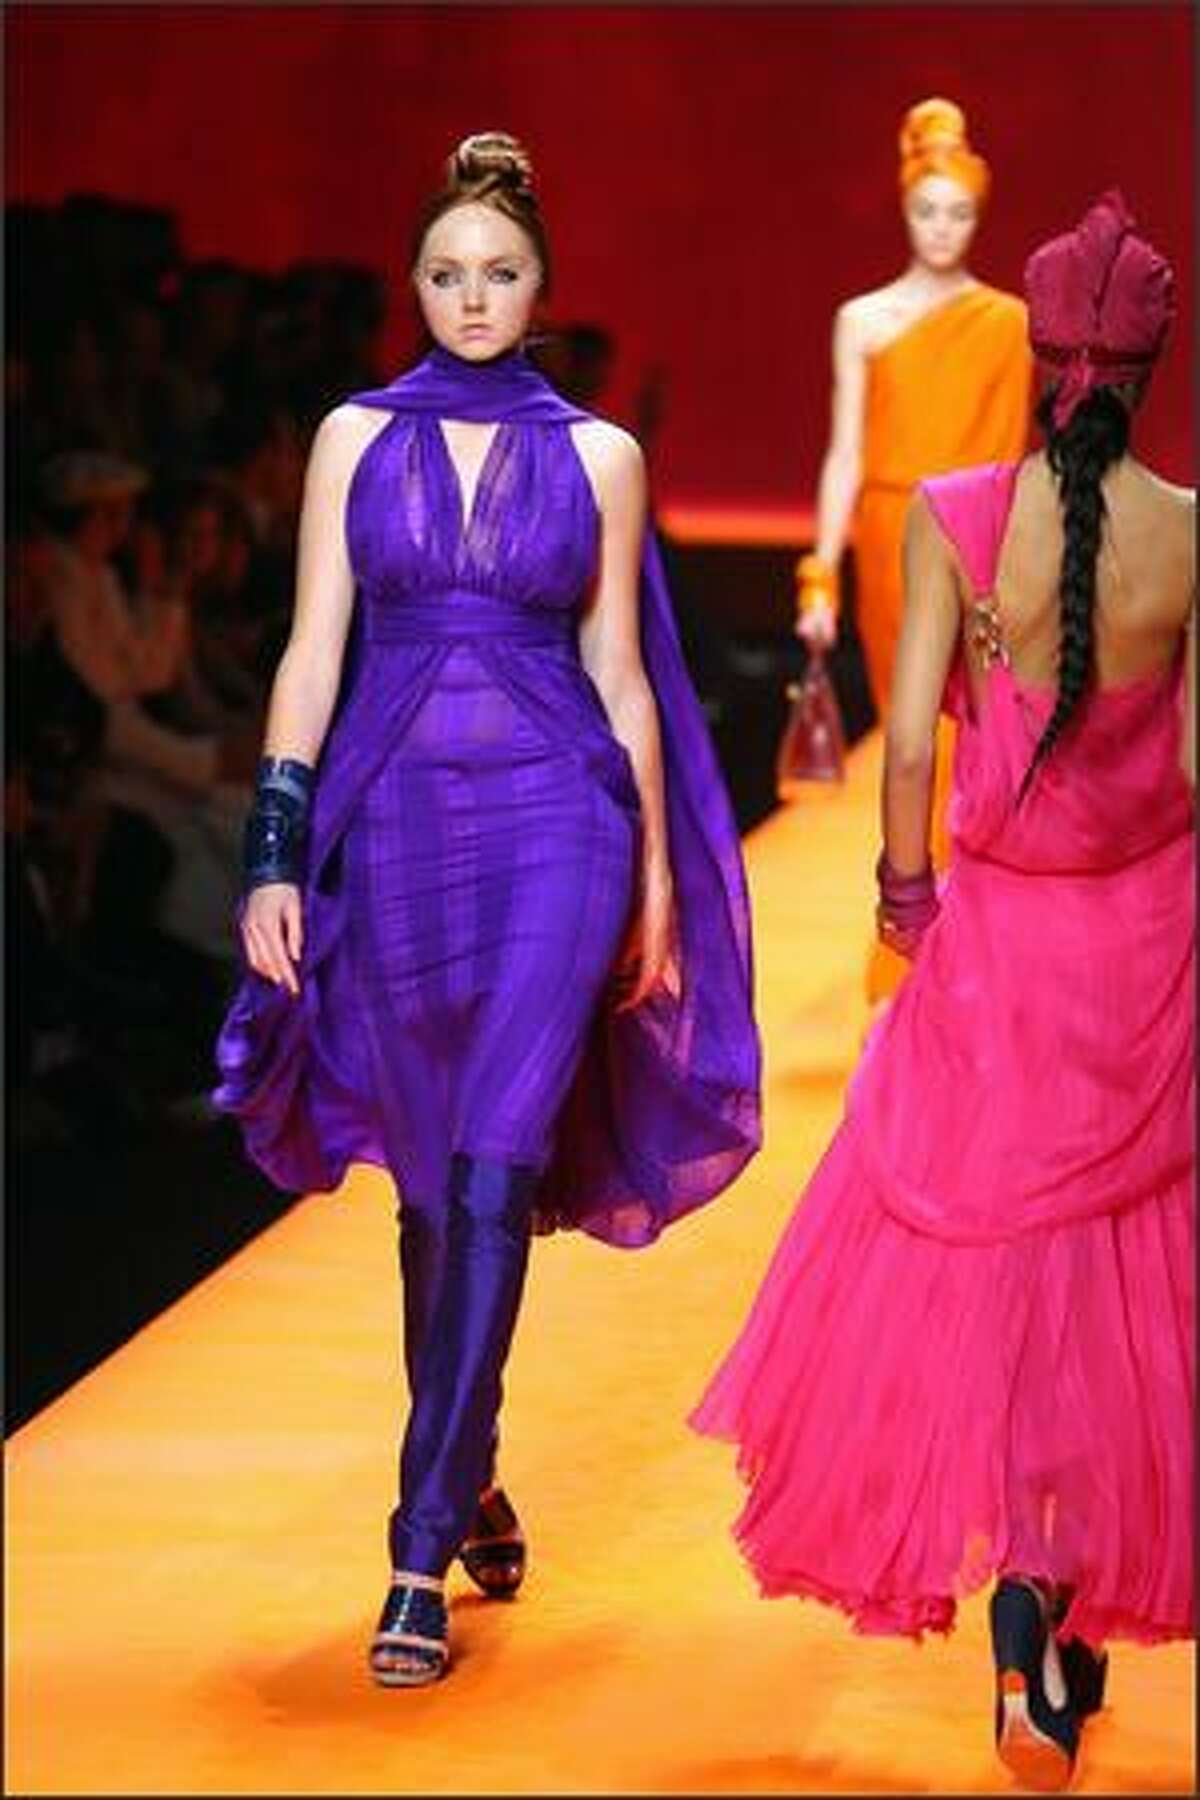 British model Lily Cole presents a creation by French designer Jean Paul Gaultier for Hermes during Spring/Summer 2008 ready-to-wear collection show in Paris, 06 October 2007.